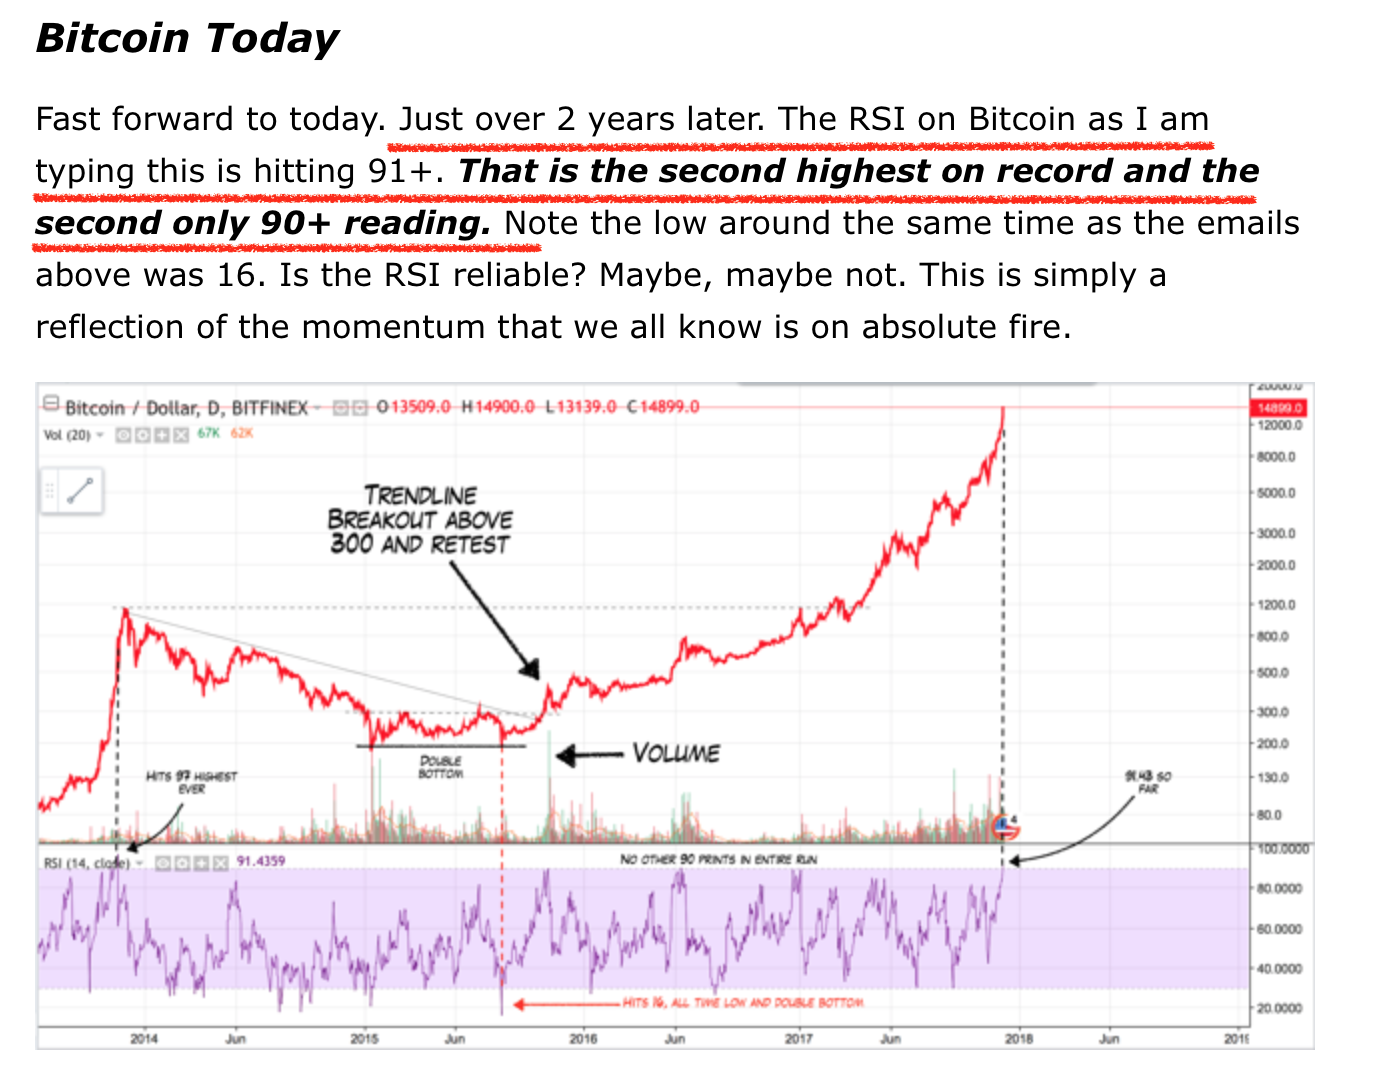 I Wrote The Bitcoin Bonanza In It Argued That Price Was Extremely Extended And Nearing Levels Not Seen Since Last Peak 2017